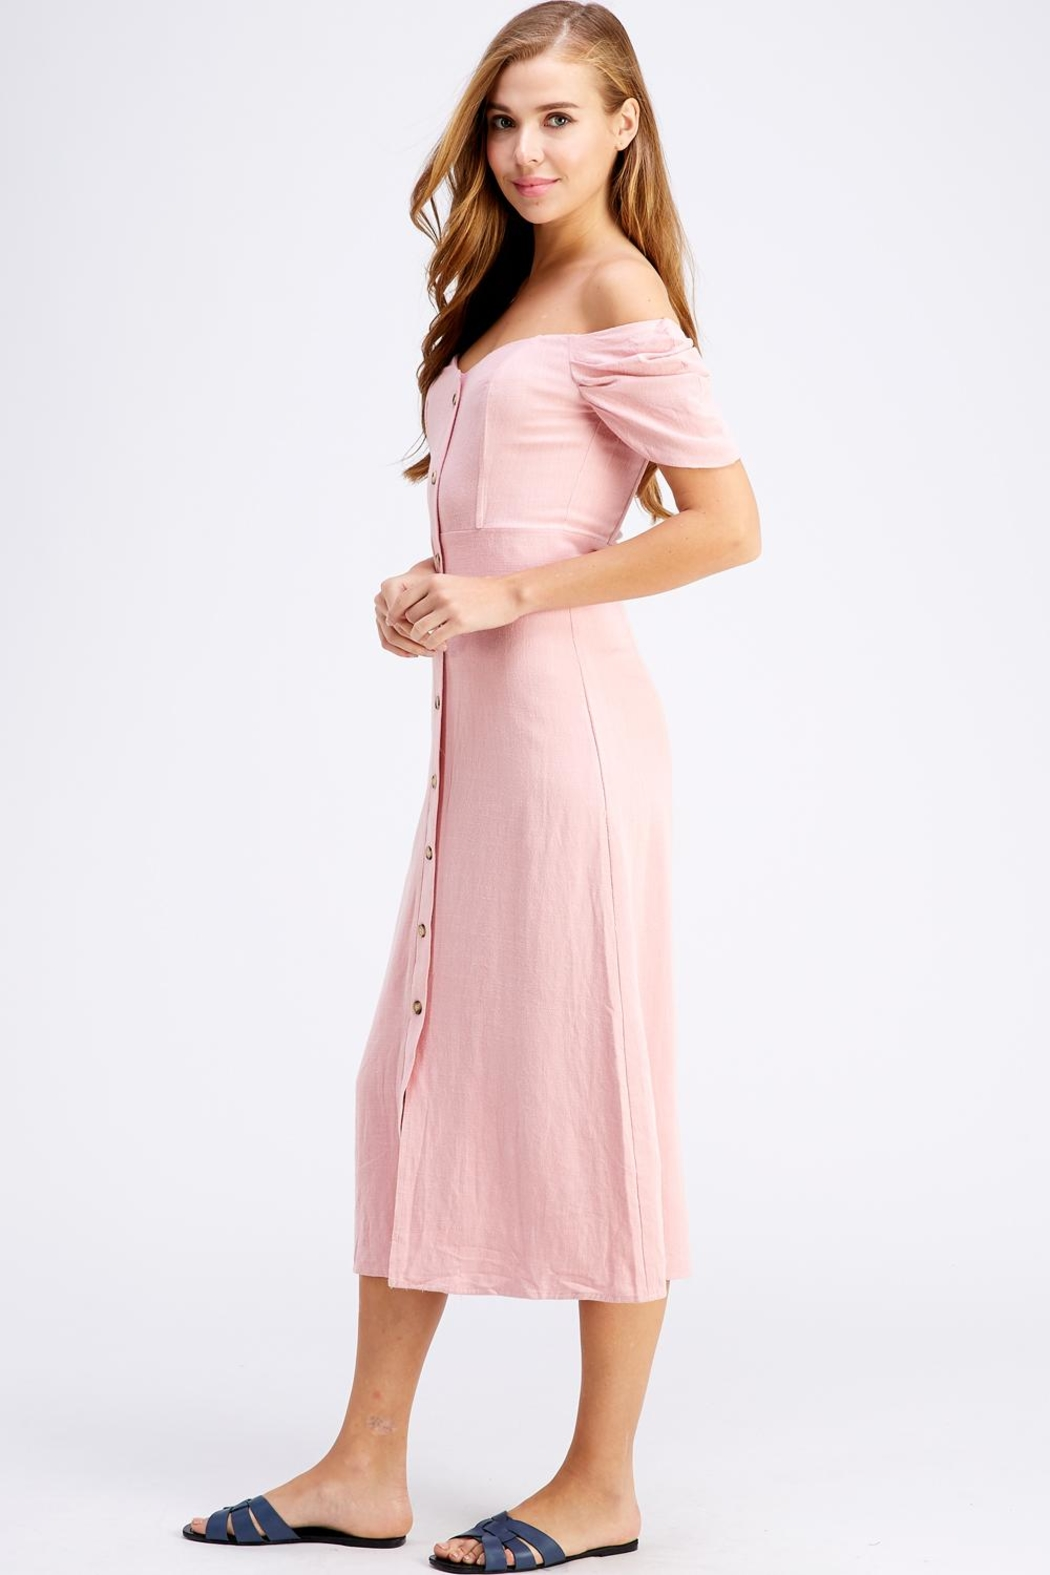 dress forum Button-Down Midi Dress - Front Full Image